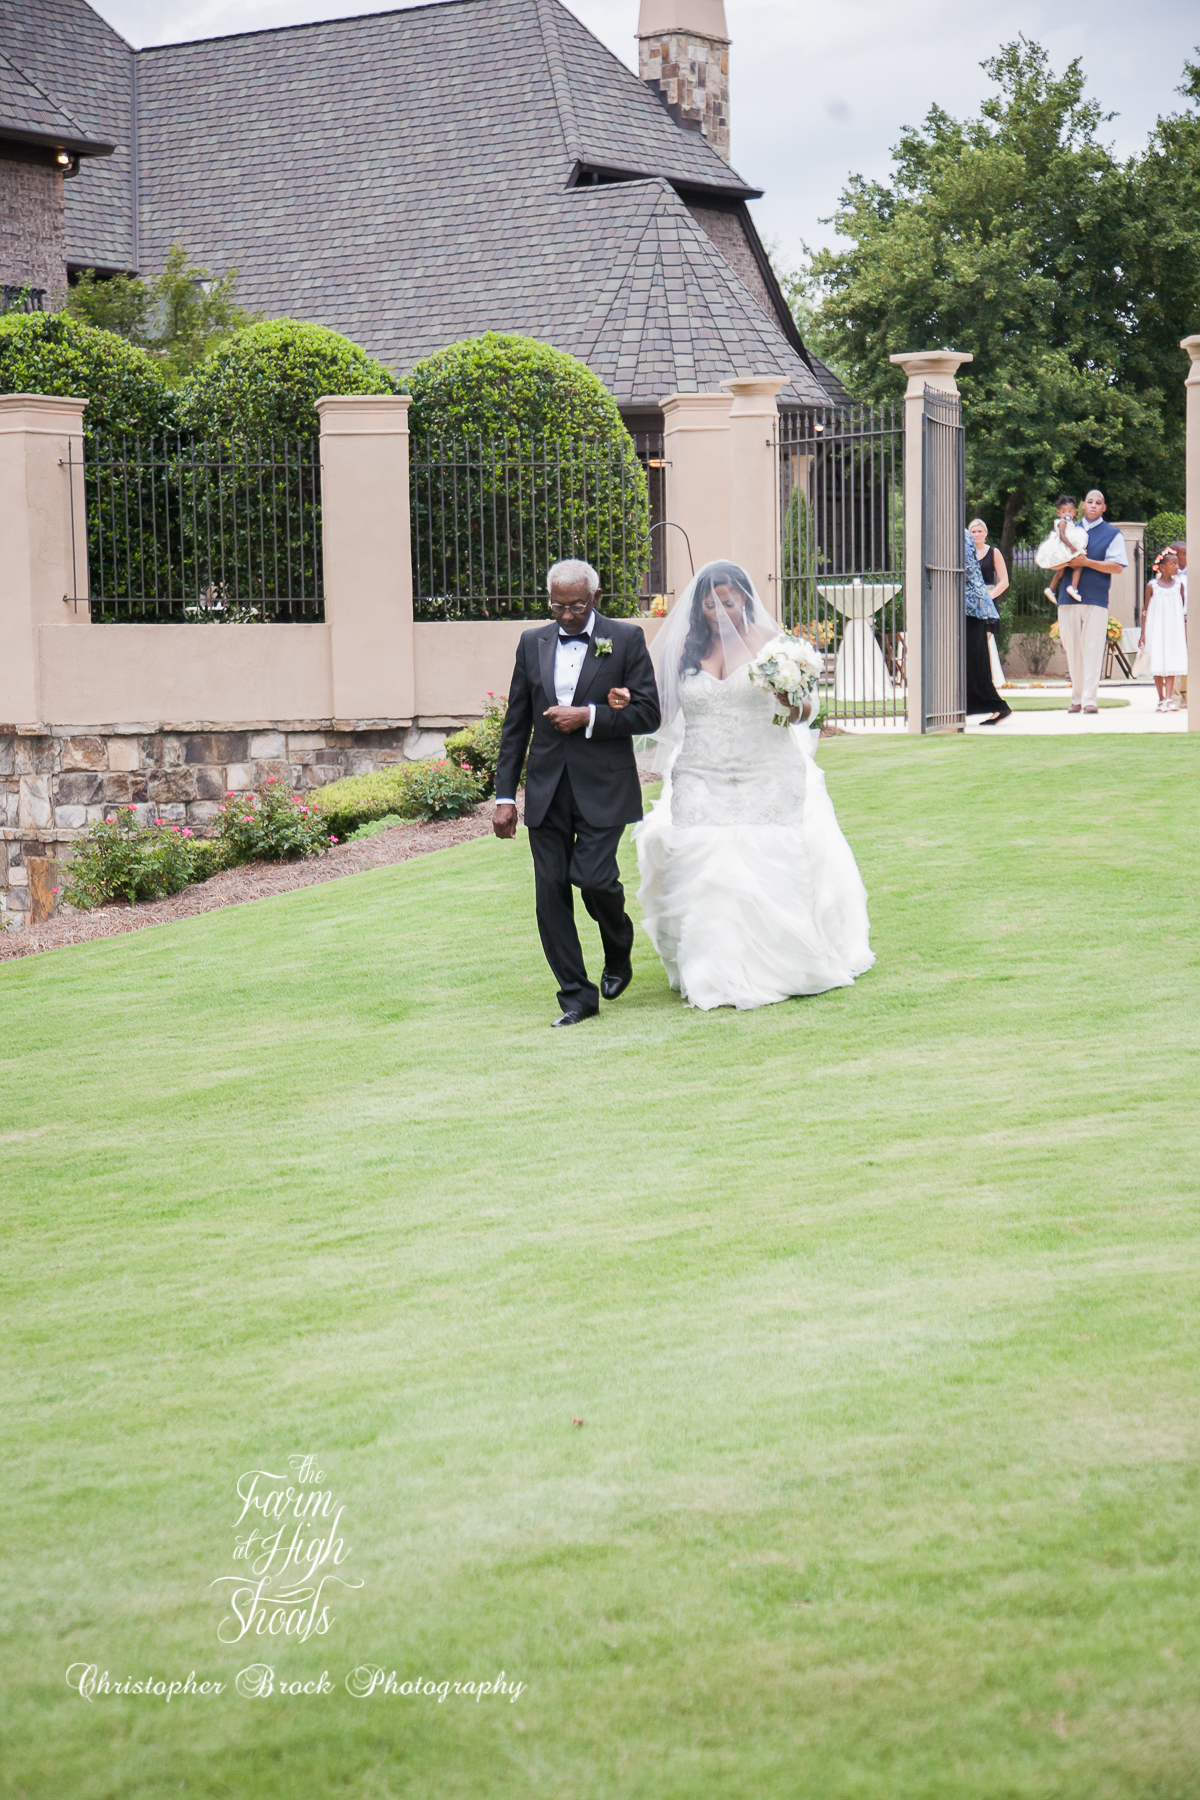 The Farm at High Shoals -- Atlanta Vineyard Wedding Venue (153 of 676)